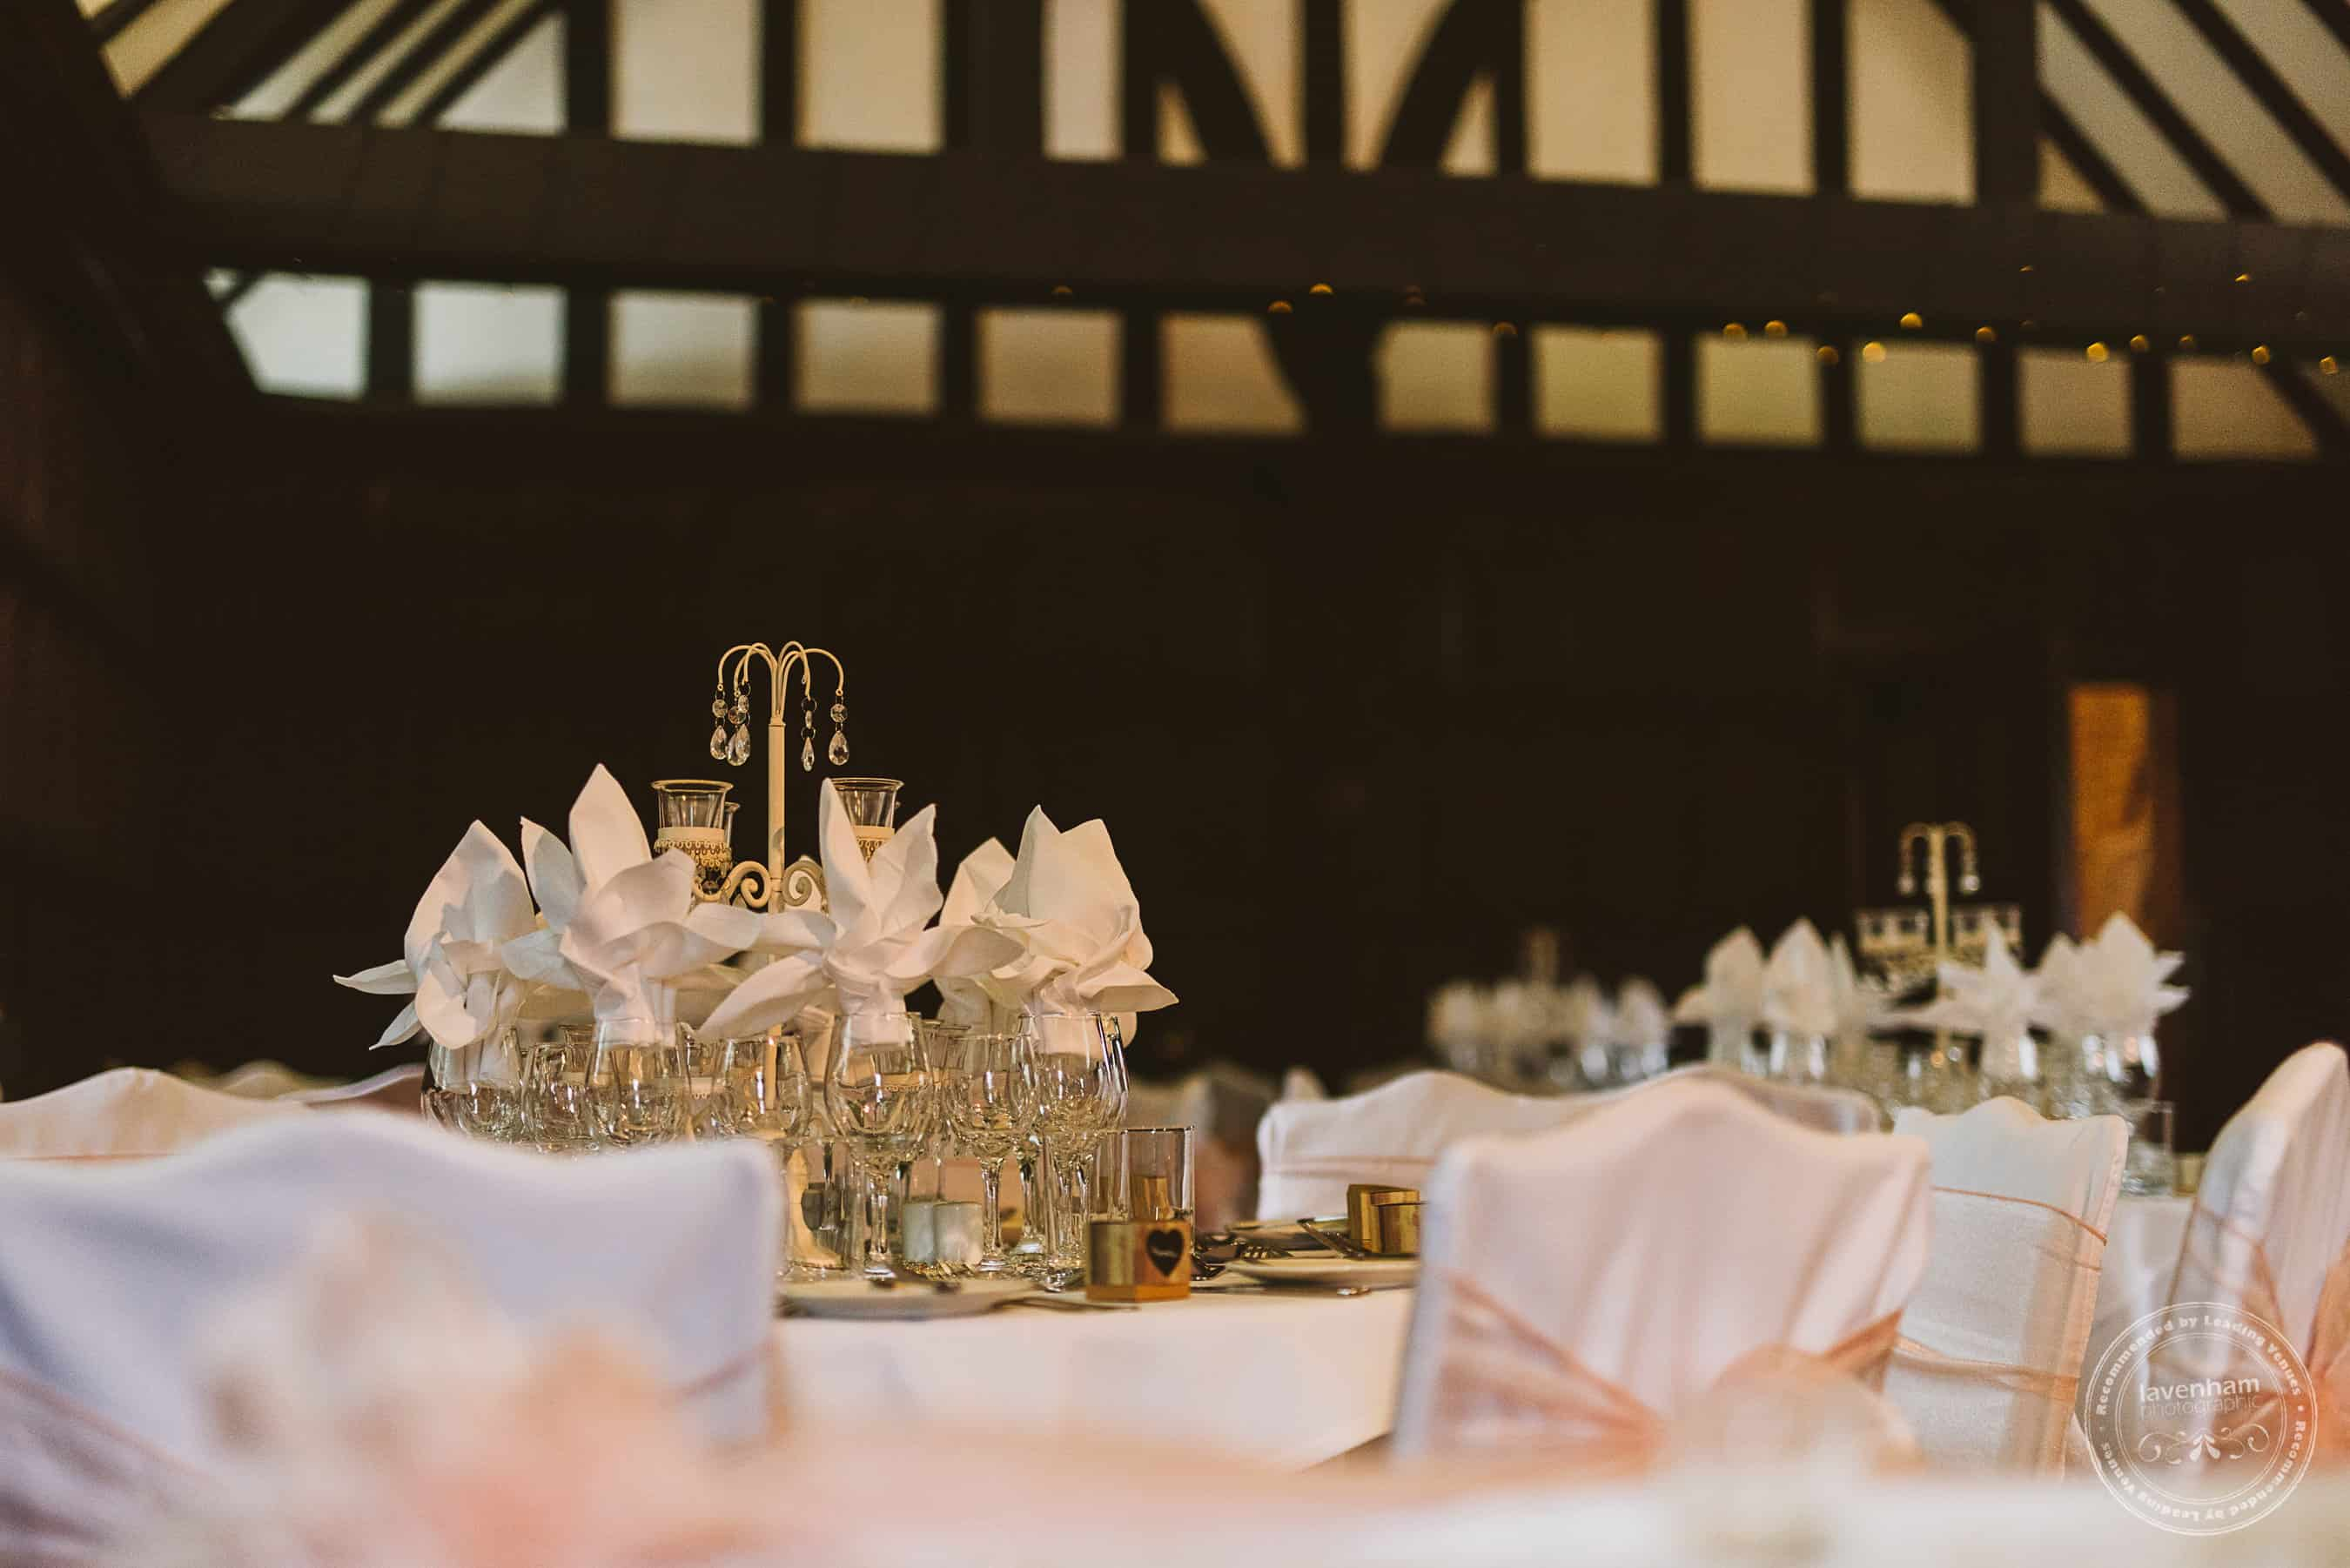 290518 Leez Priory Wedding Photography Lavenham Photographic 141